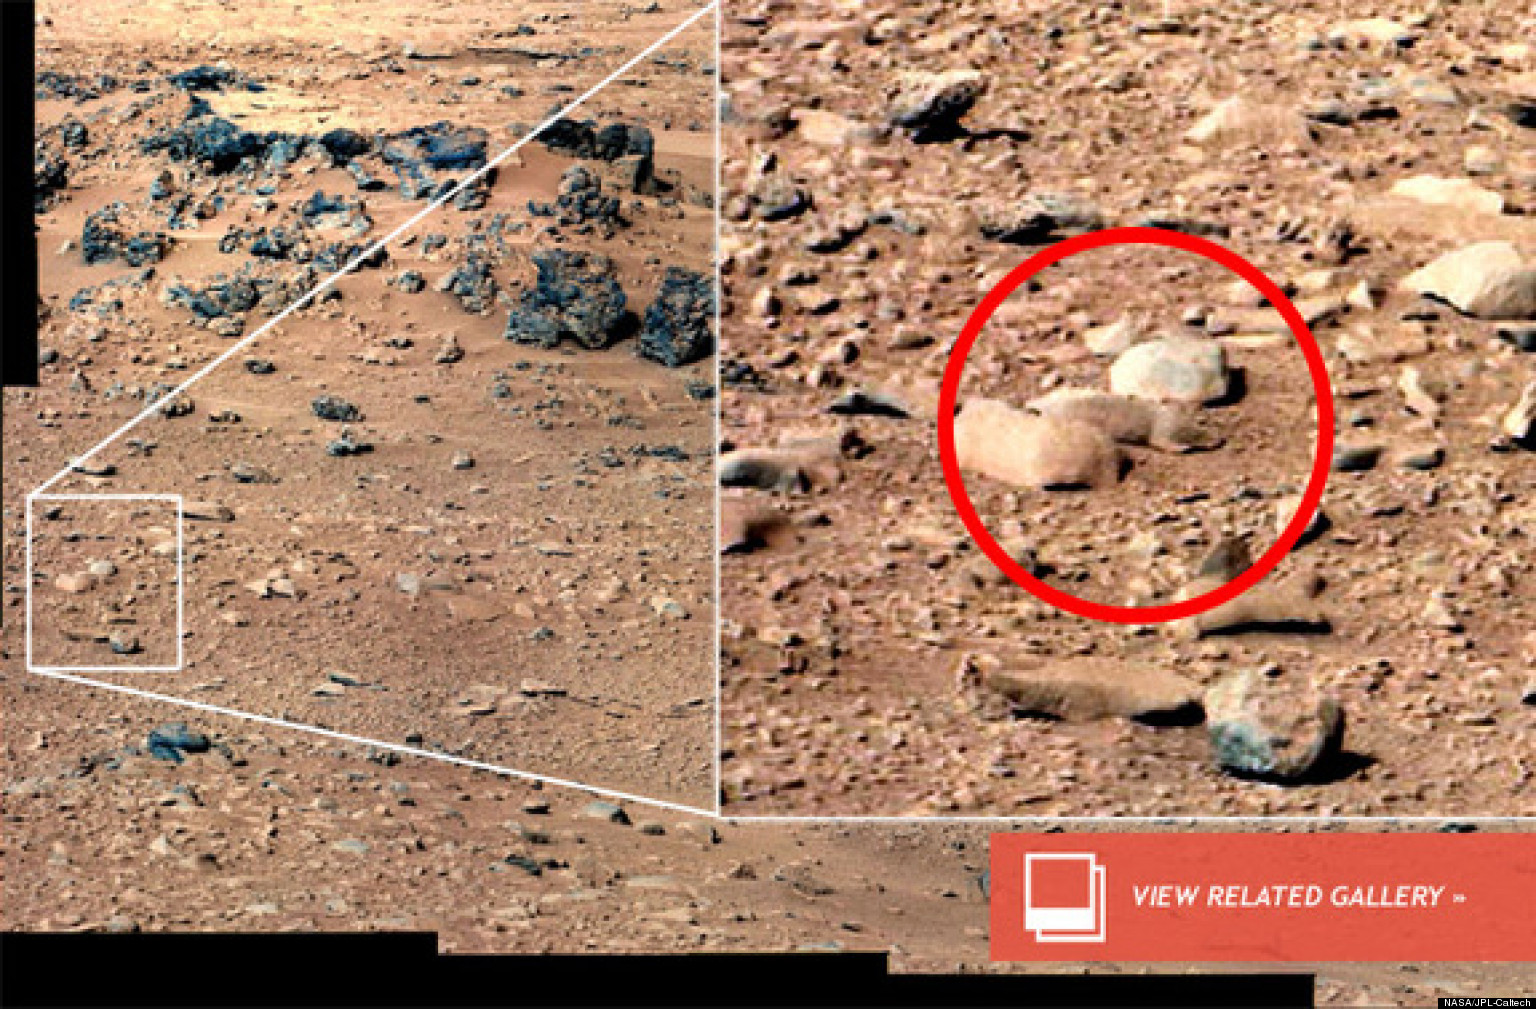 Mars Rat Wont Be Analyzed By Rover As Curiosity